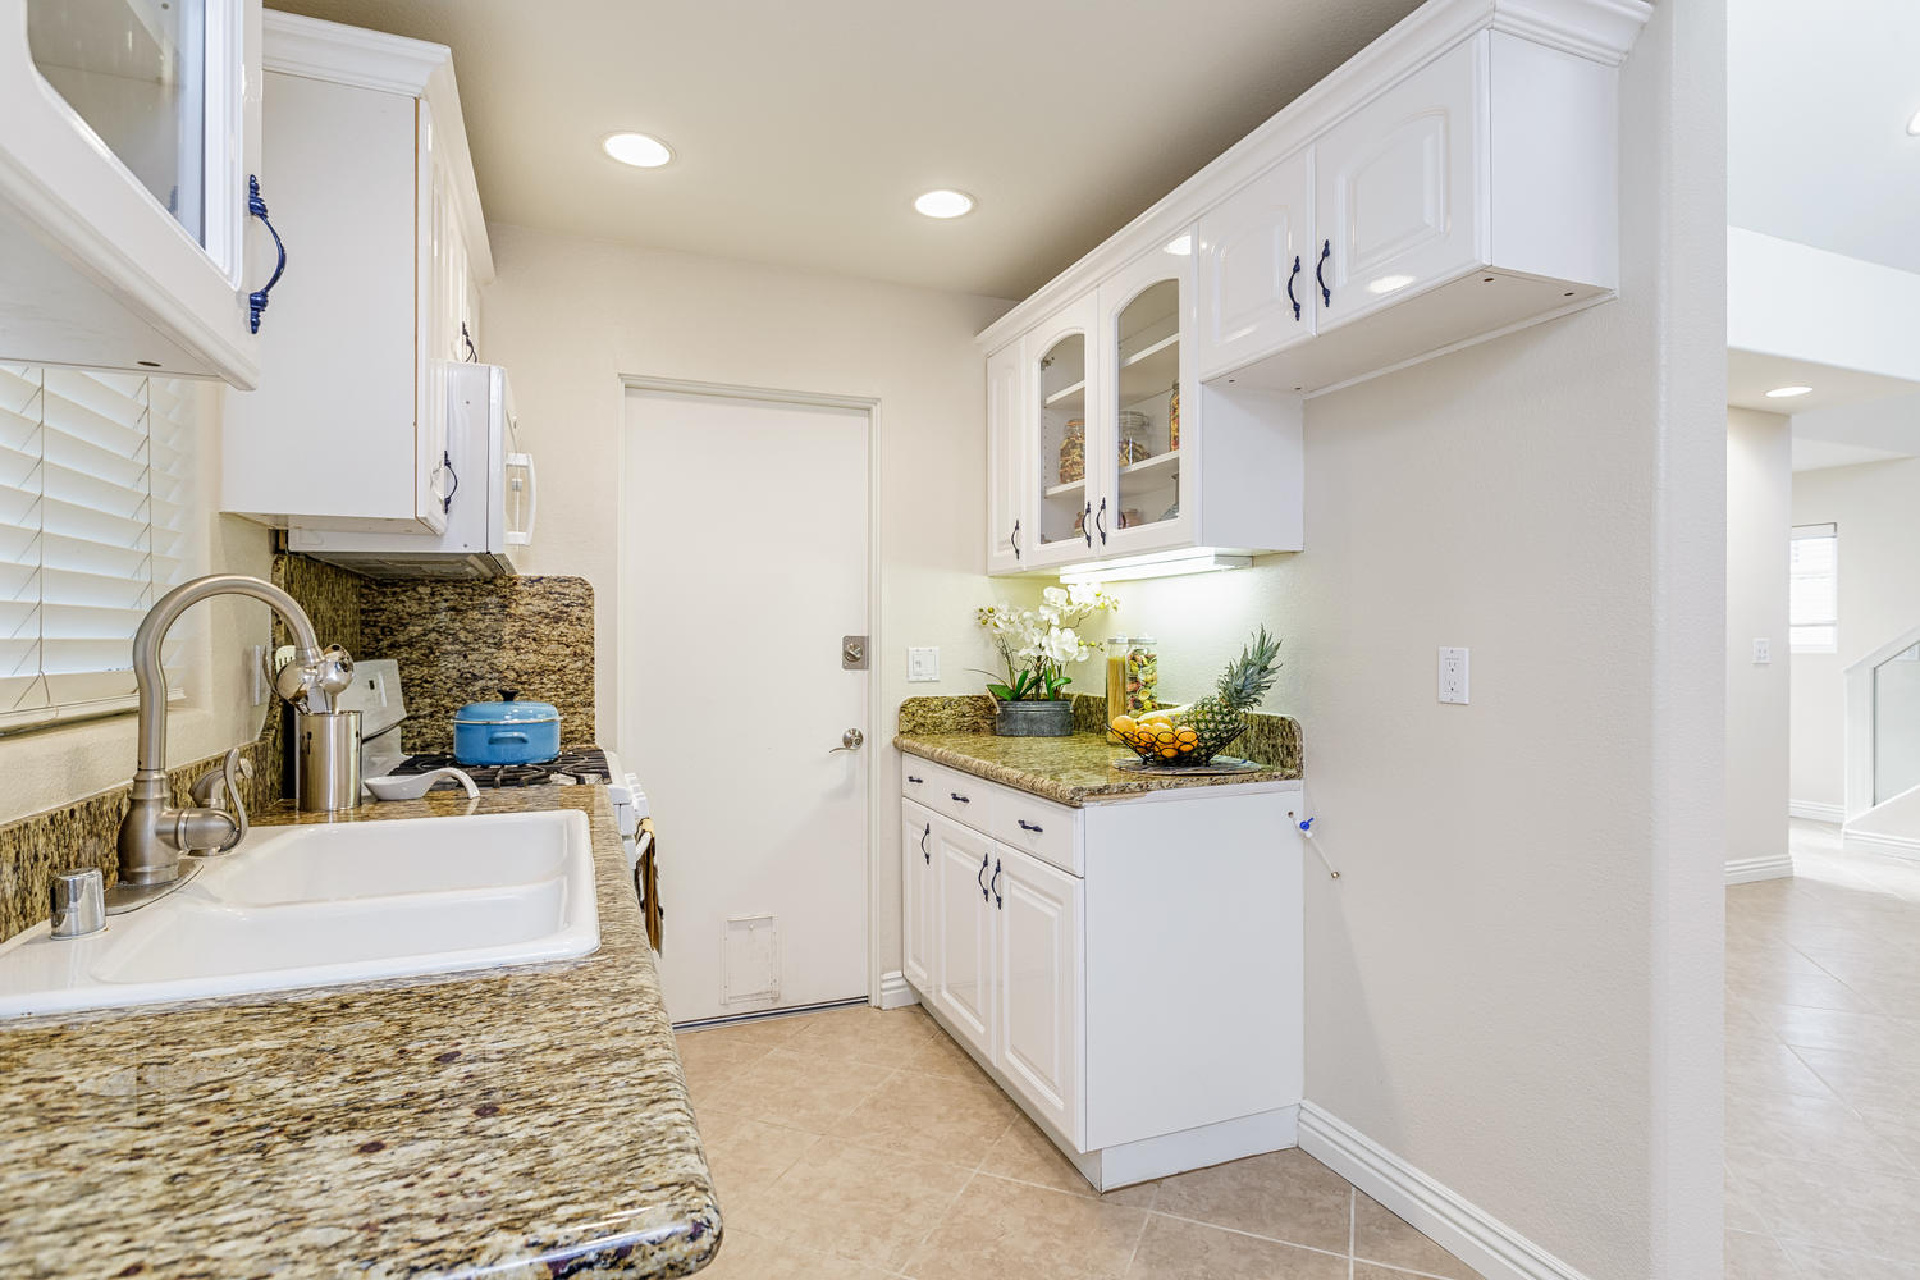 http://addressrealestate.com/media/images/blogs/38/2/b_6-1408-ocean-dr-oxnard-ca-93035-mls-size-006-18-kitchen-1500x1000-72dpi.jpg